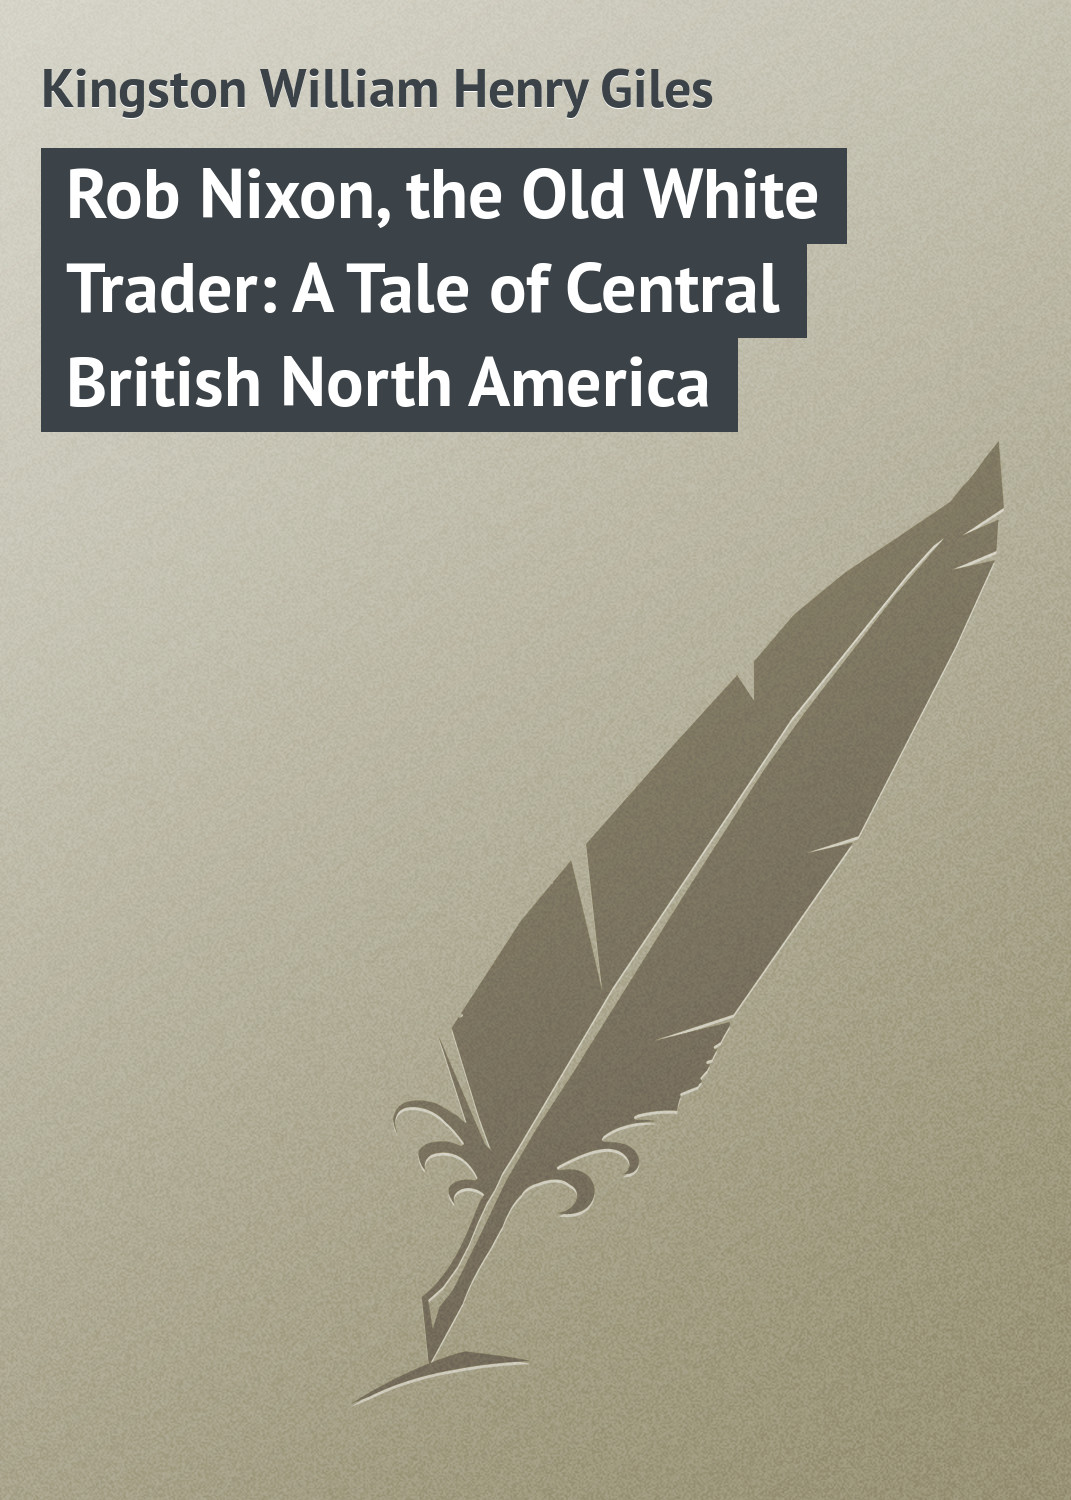 Kingston William Henry Giles Rob Nixon, the Old White Trader: A Tale of Central British North America